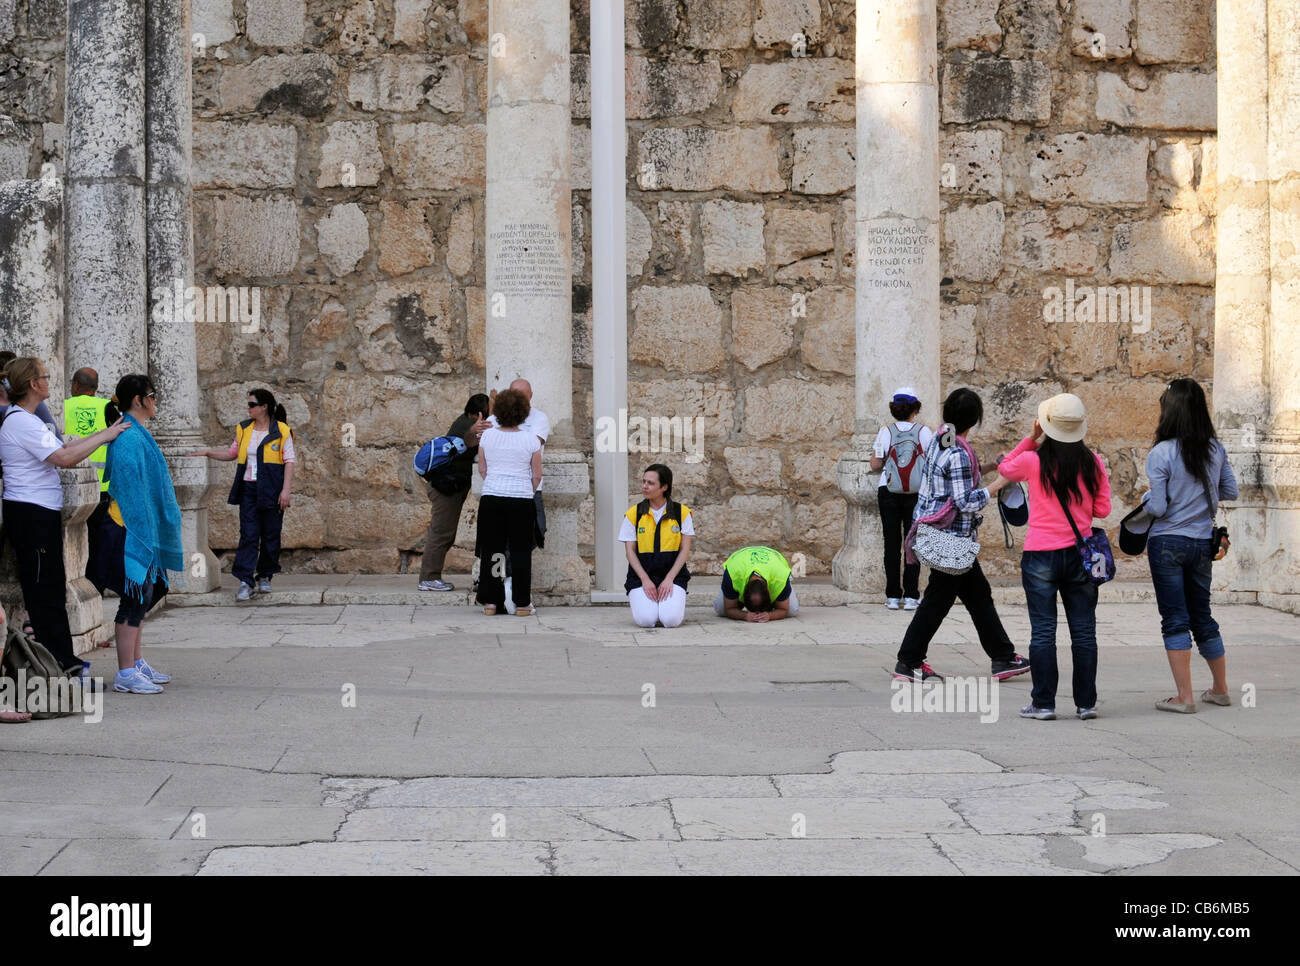 Two people praying in ruins of 4th century  synagogue,Capernaum, Galilee, Israel,Asia, Middle East - Stock Image